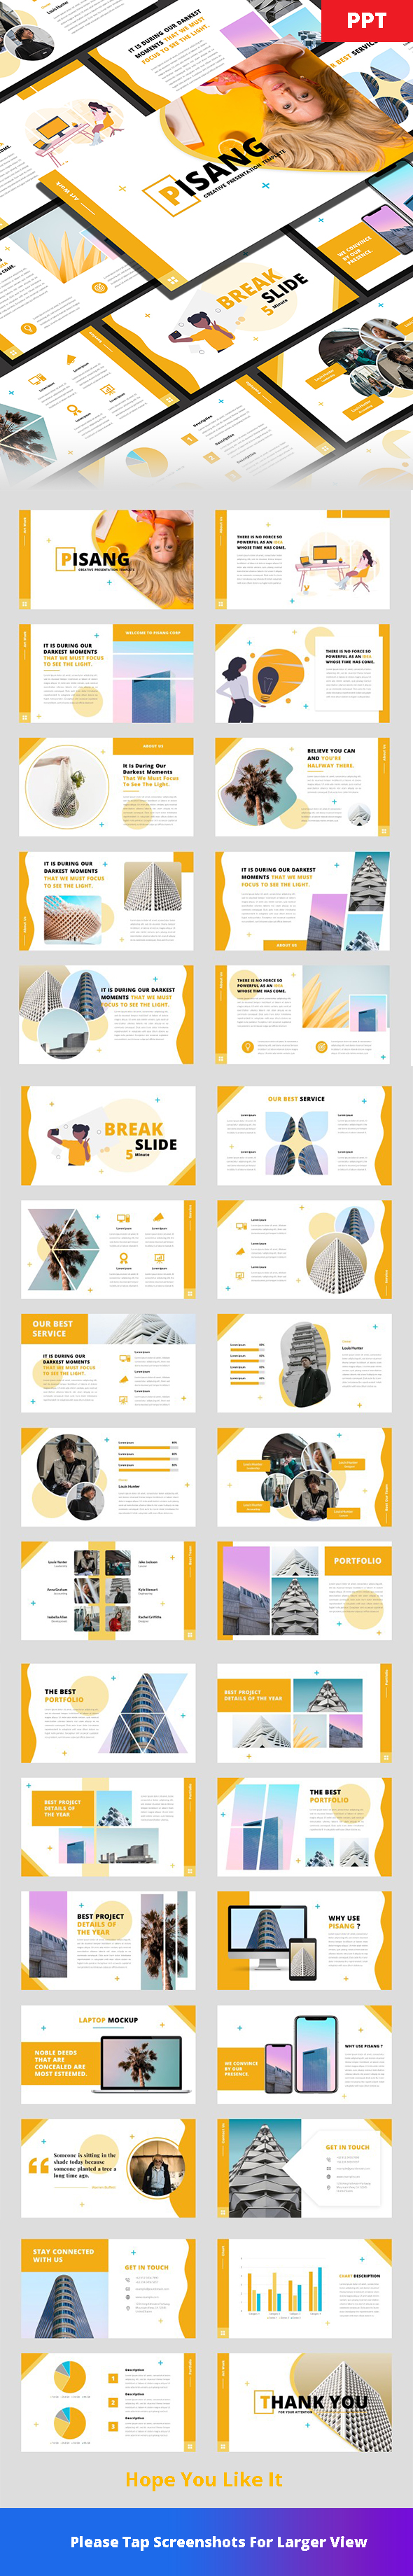 Pisang - Creative PowerPoint Template